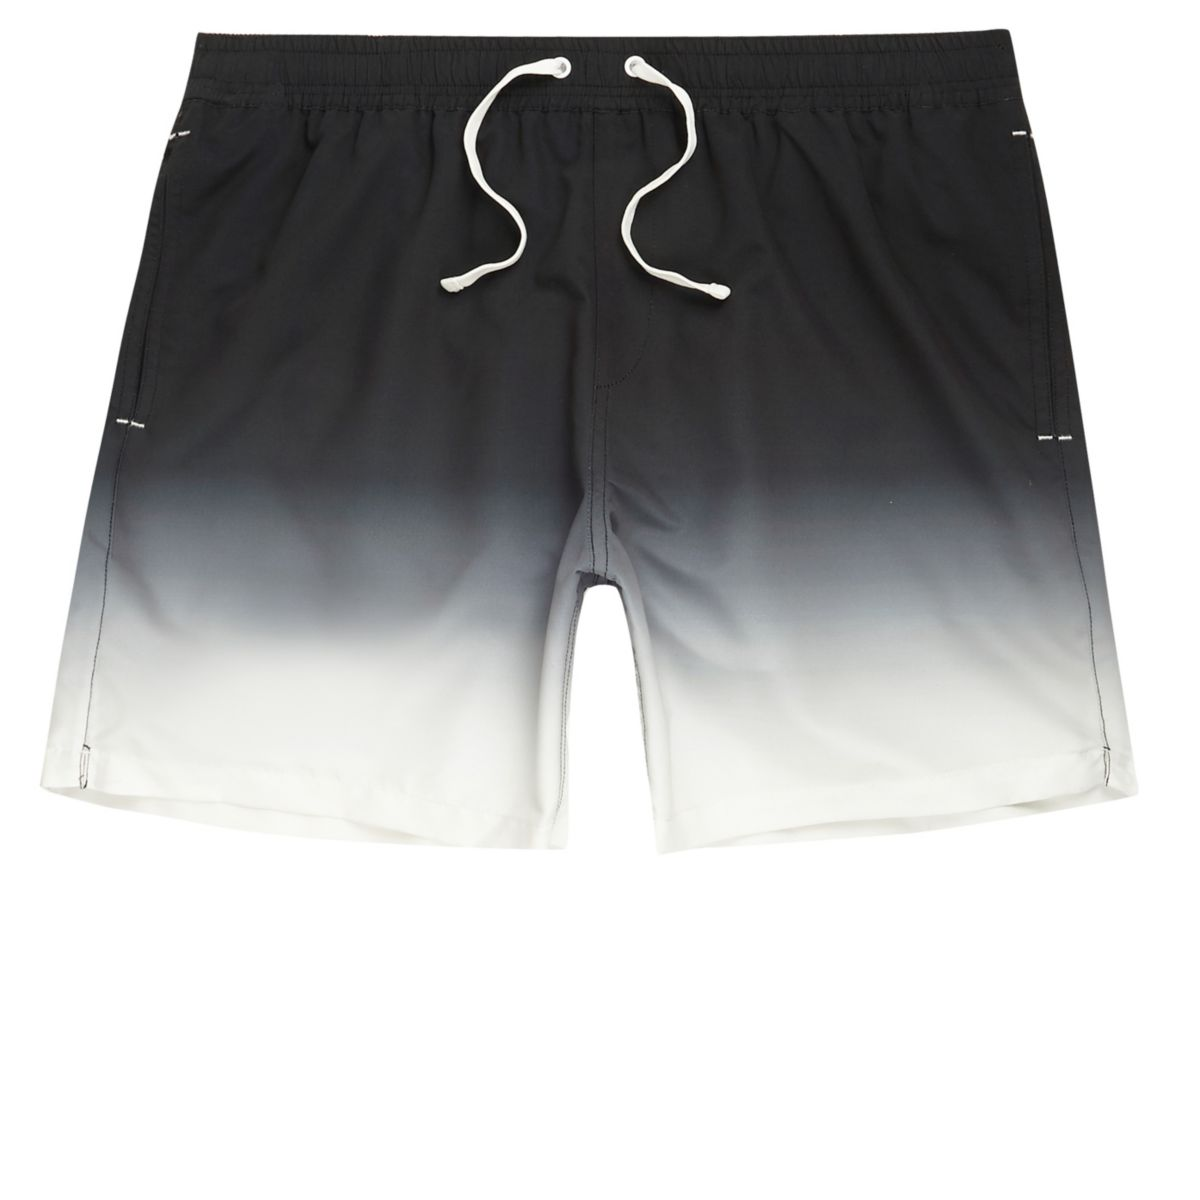 Mens Black dip dye swim shorts River Island Low Shipping Cheap Price Ebay Sale Online New Arrival Online Cheap Wiki Buy Cheap Best Wholesale jtglb3